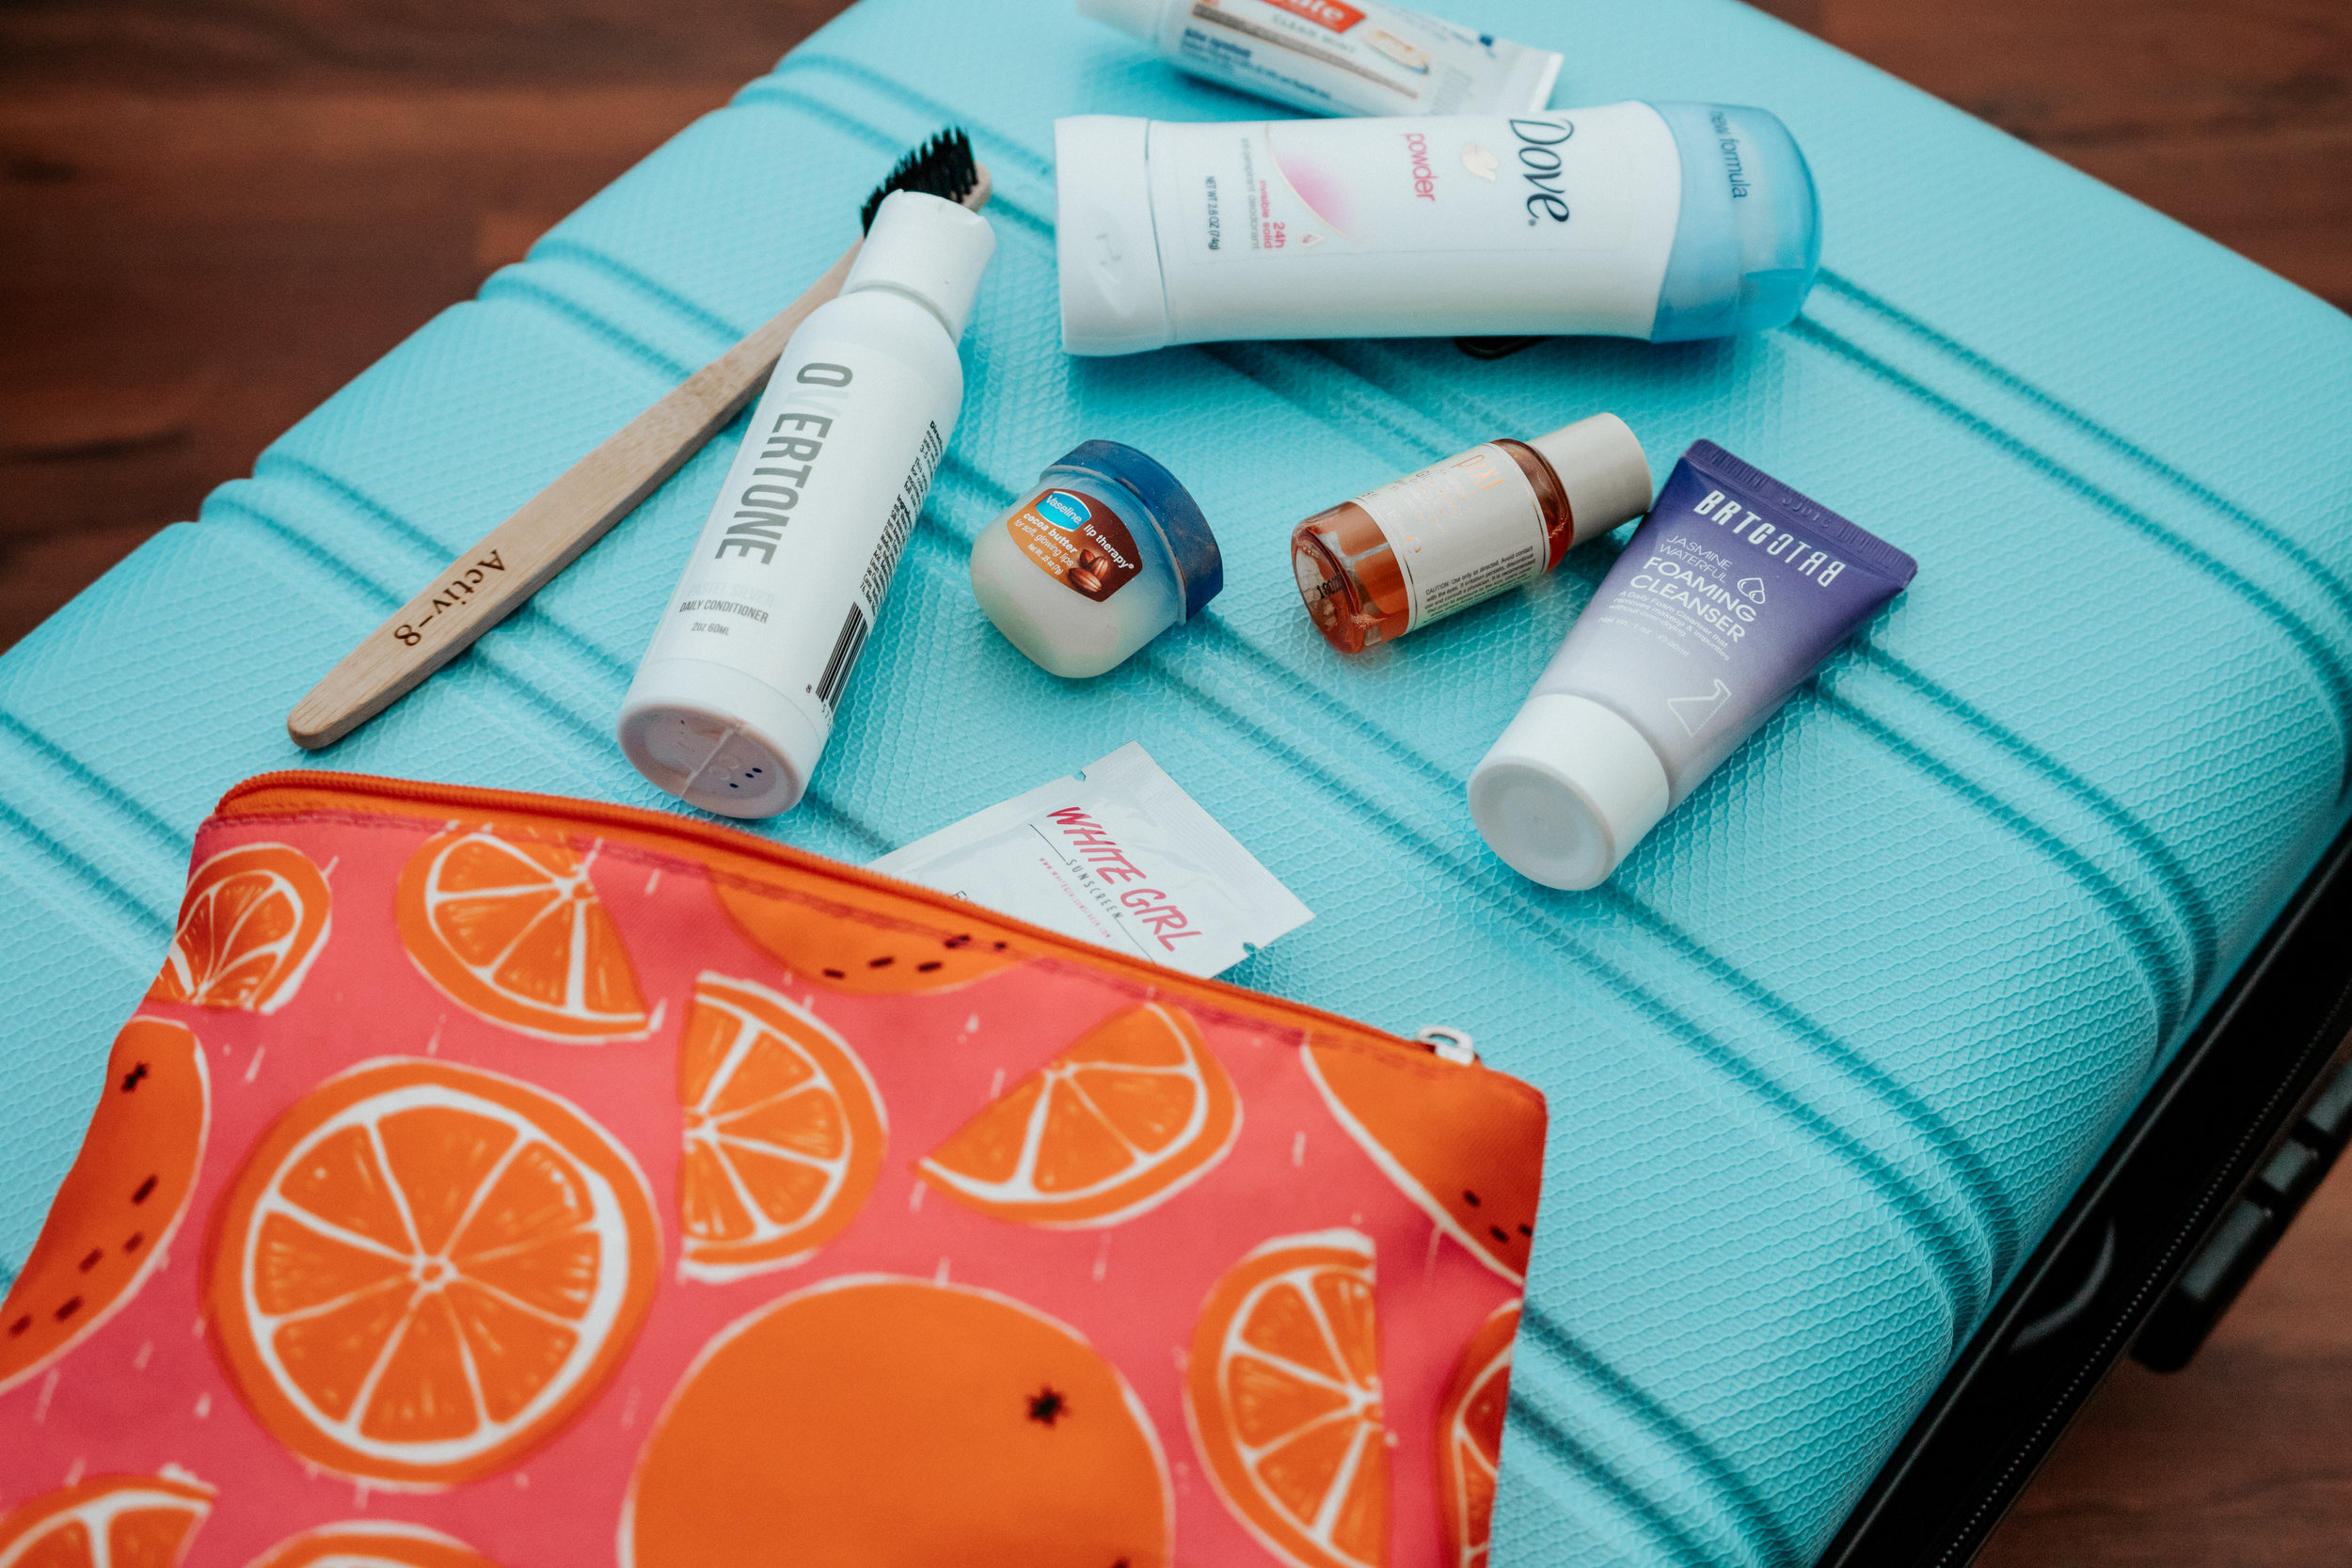 ashlee-rose-photography-travel-tiny-ashe-iamashleerose.com-ipsy-whitegirlsunscreen-overtone-dove